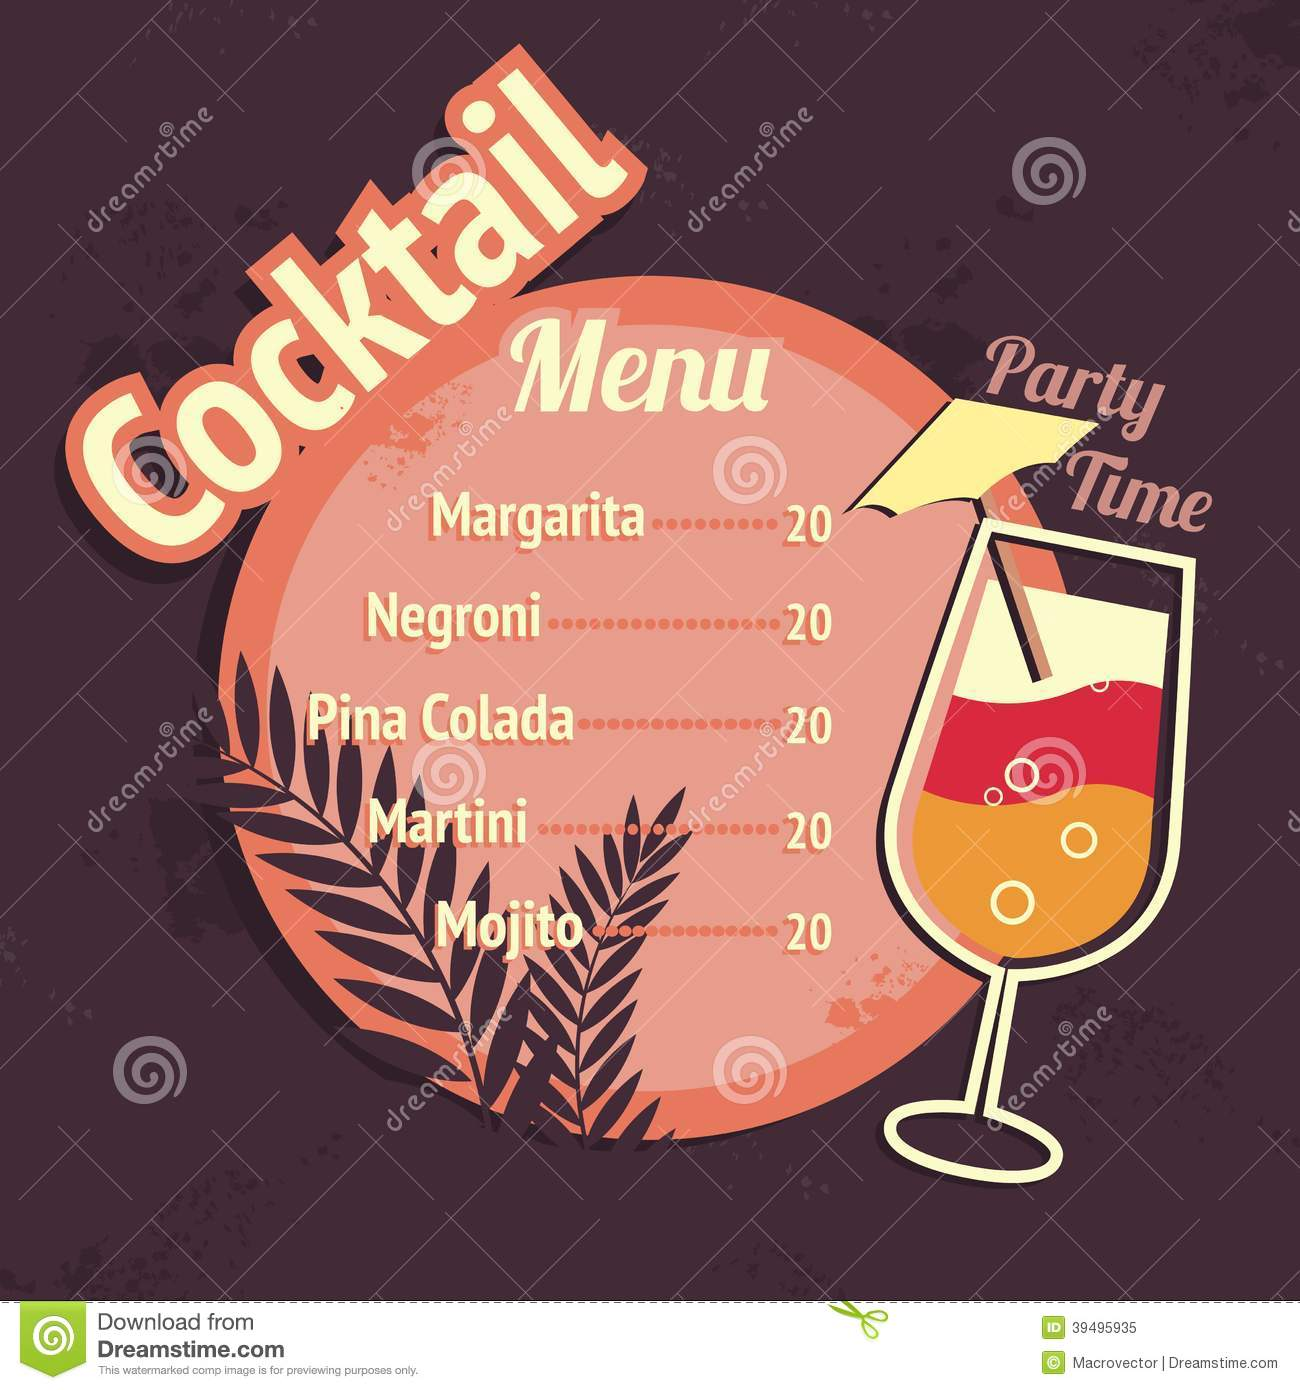 Drink Menu Template Vector Image 41096432 – Drinks Menu Template Free